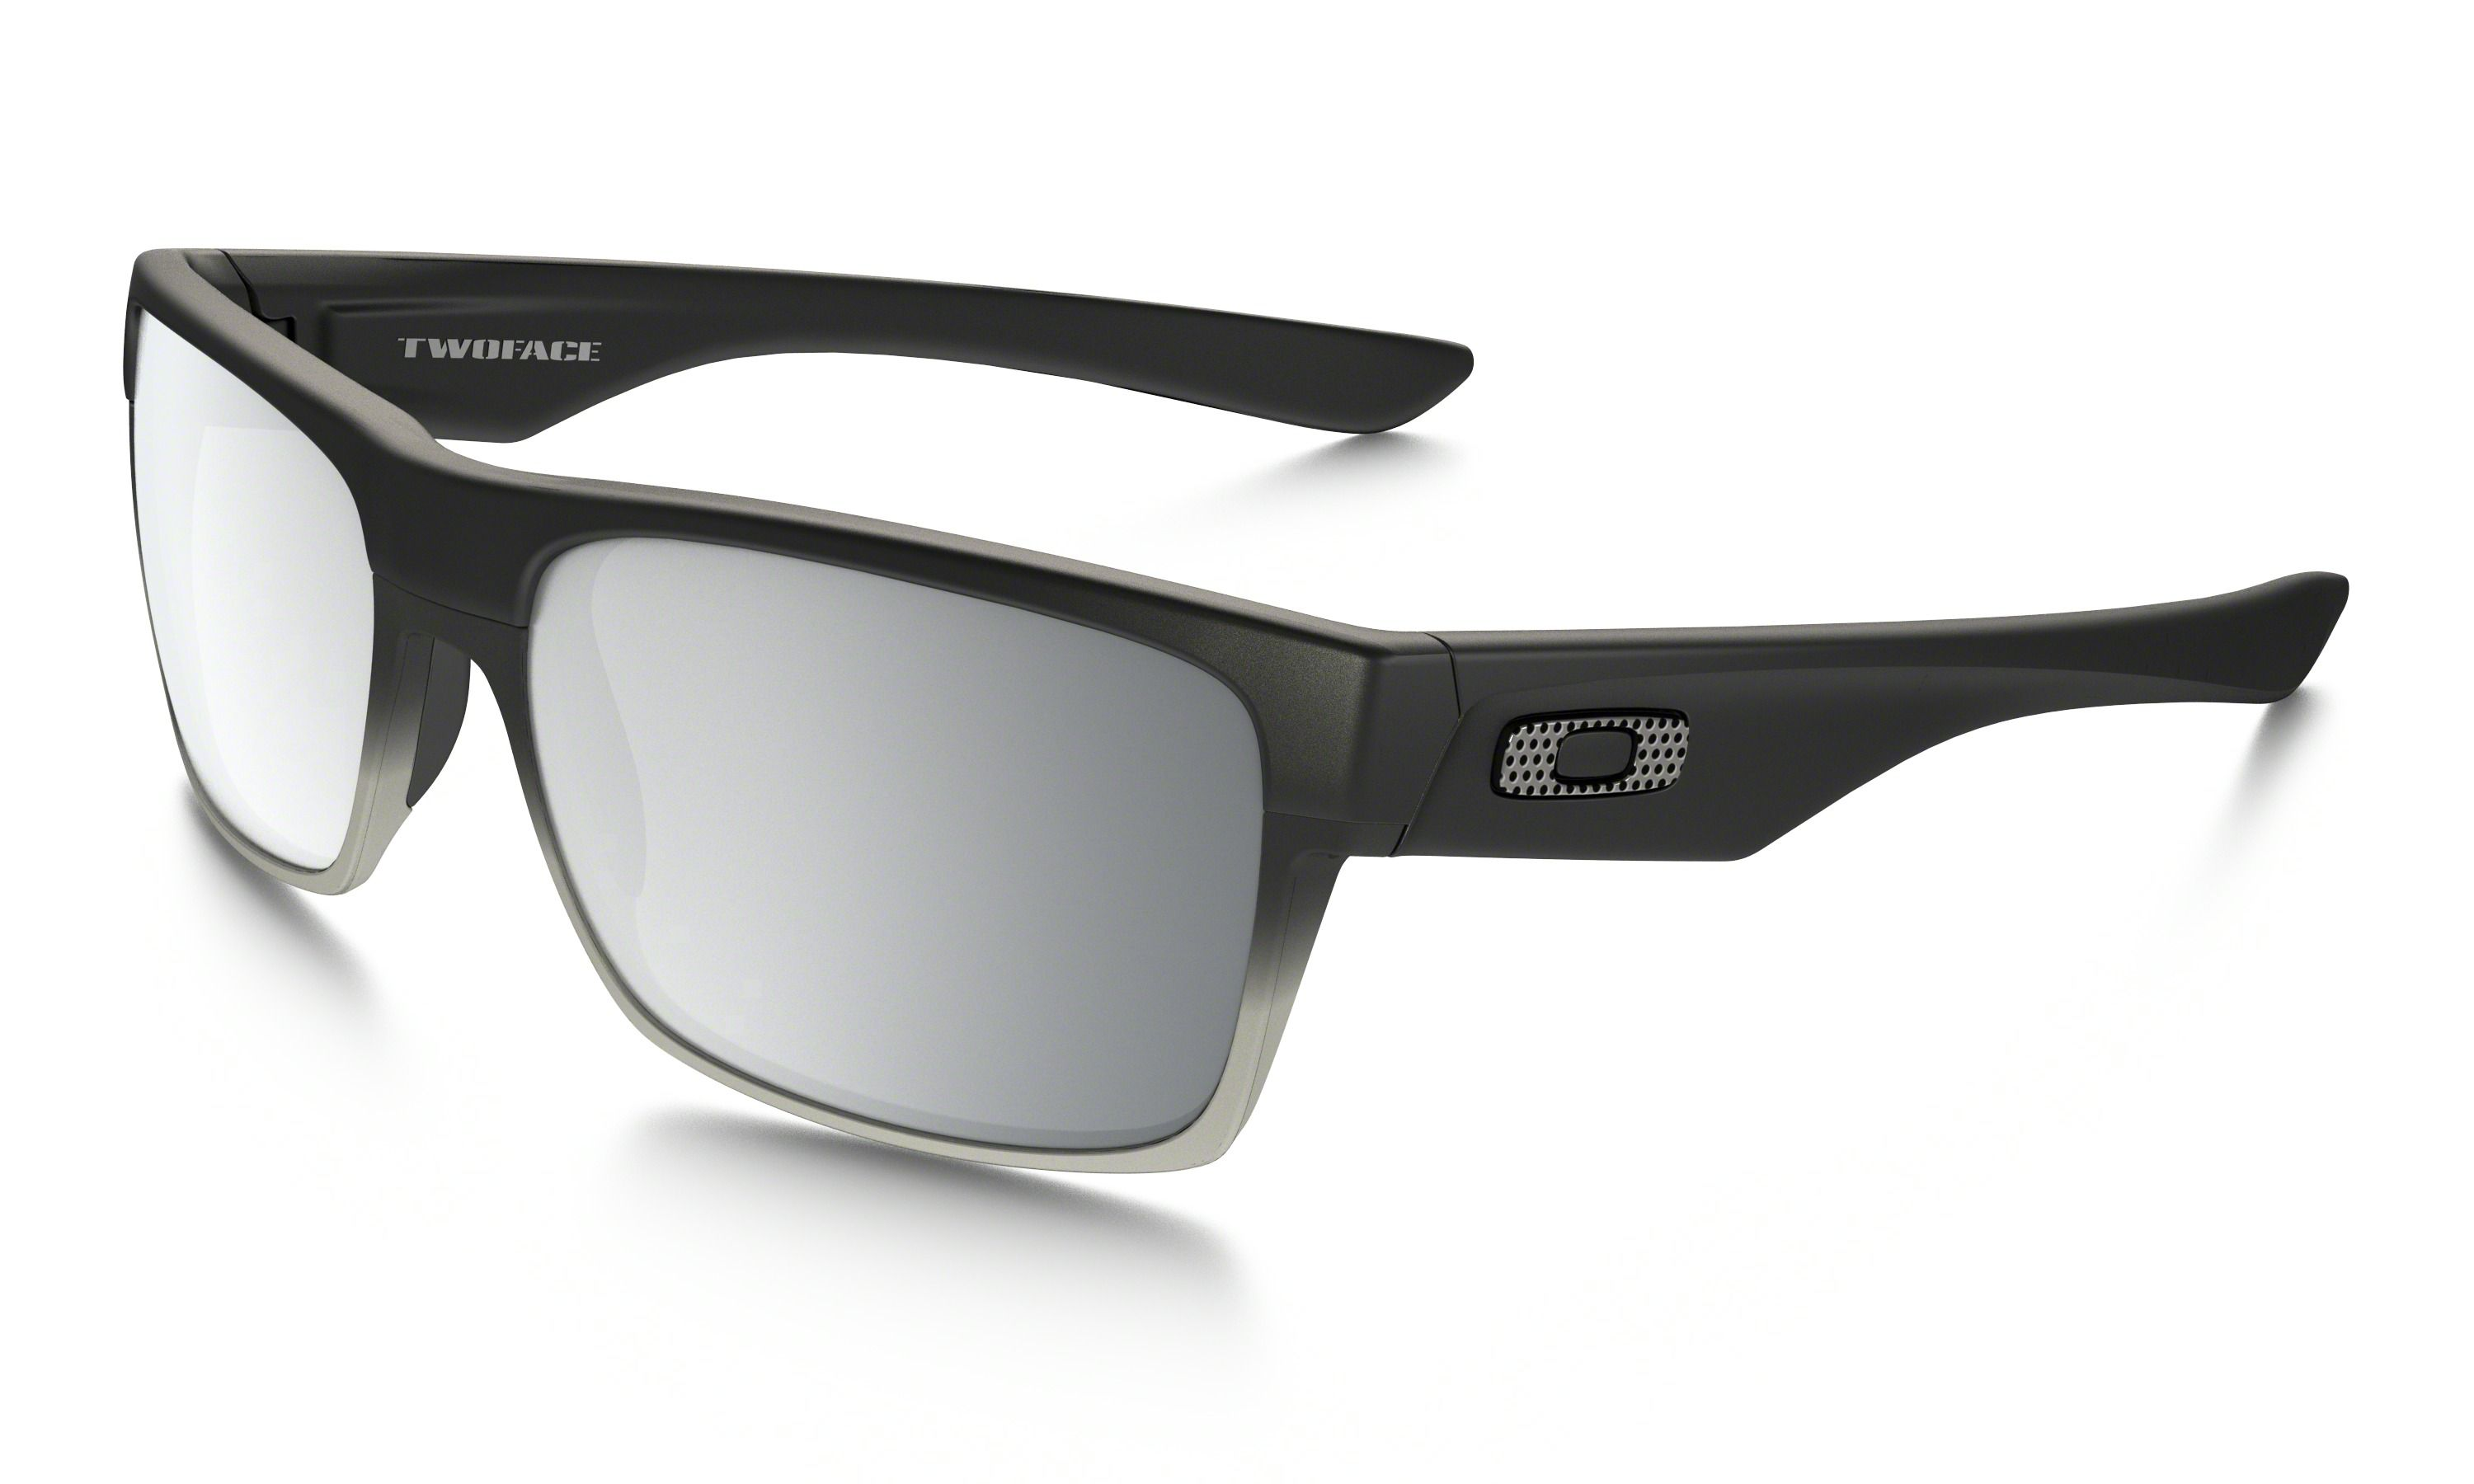 54c5df3310 Buy Oakley sunglasses for Mens TwoFace™ Machinist Collection with Matte  Black frame and Chrome Iridium